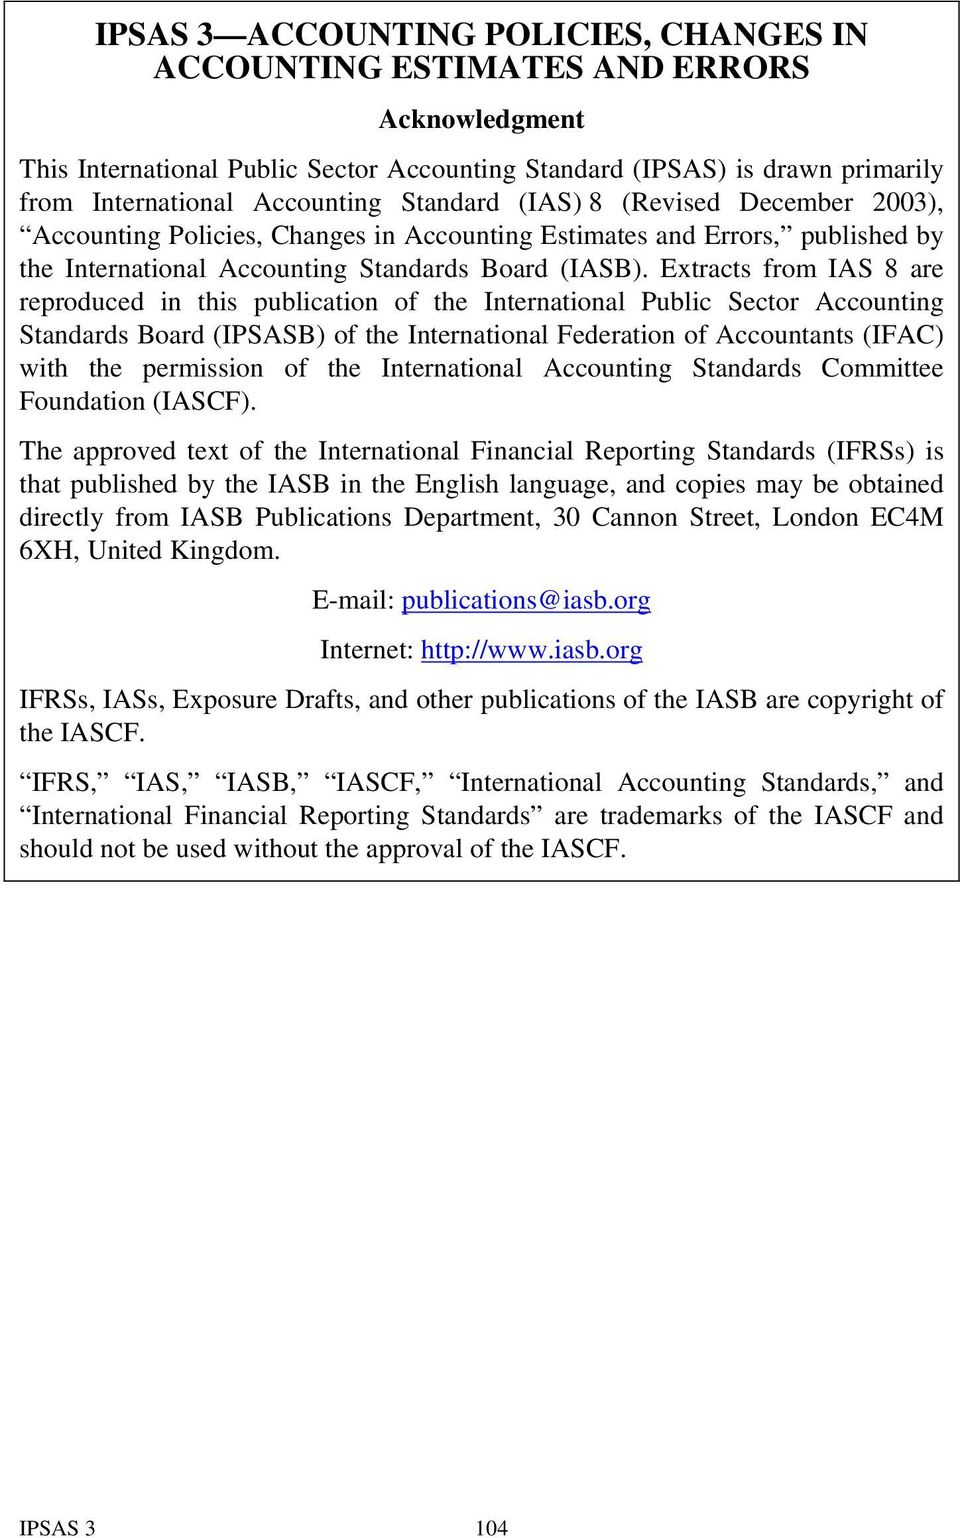 Extracts from IAS 8 are reproduced in this publication of the International Public Sector Accounting Standards Board (IPSASB) of the International Federation of Accountants (IFAC) with the permission